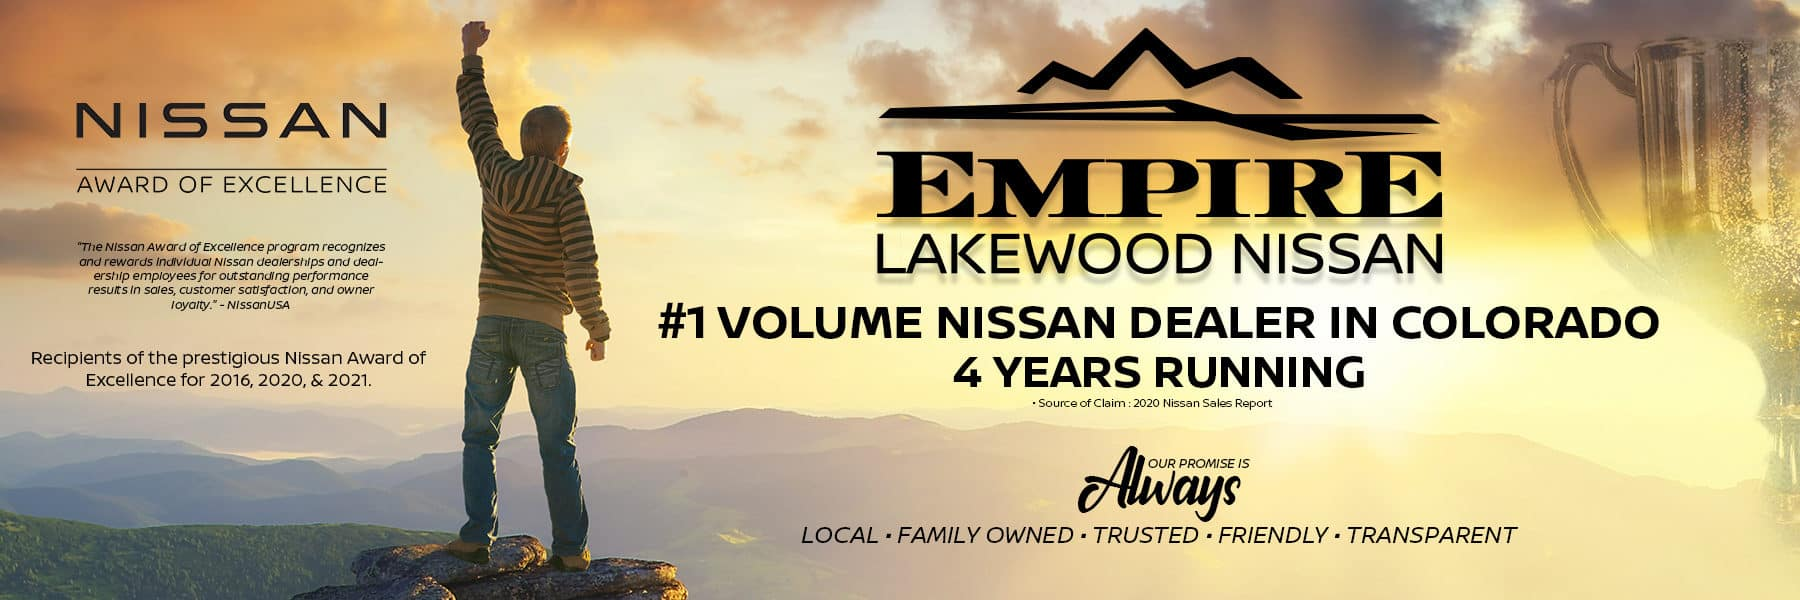 D-Empire-Lakewood-Nissan-Award-of-Excellence-FIX2